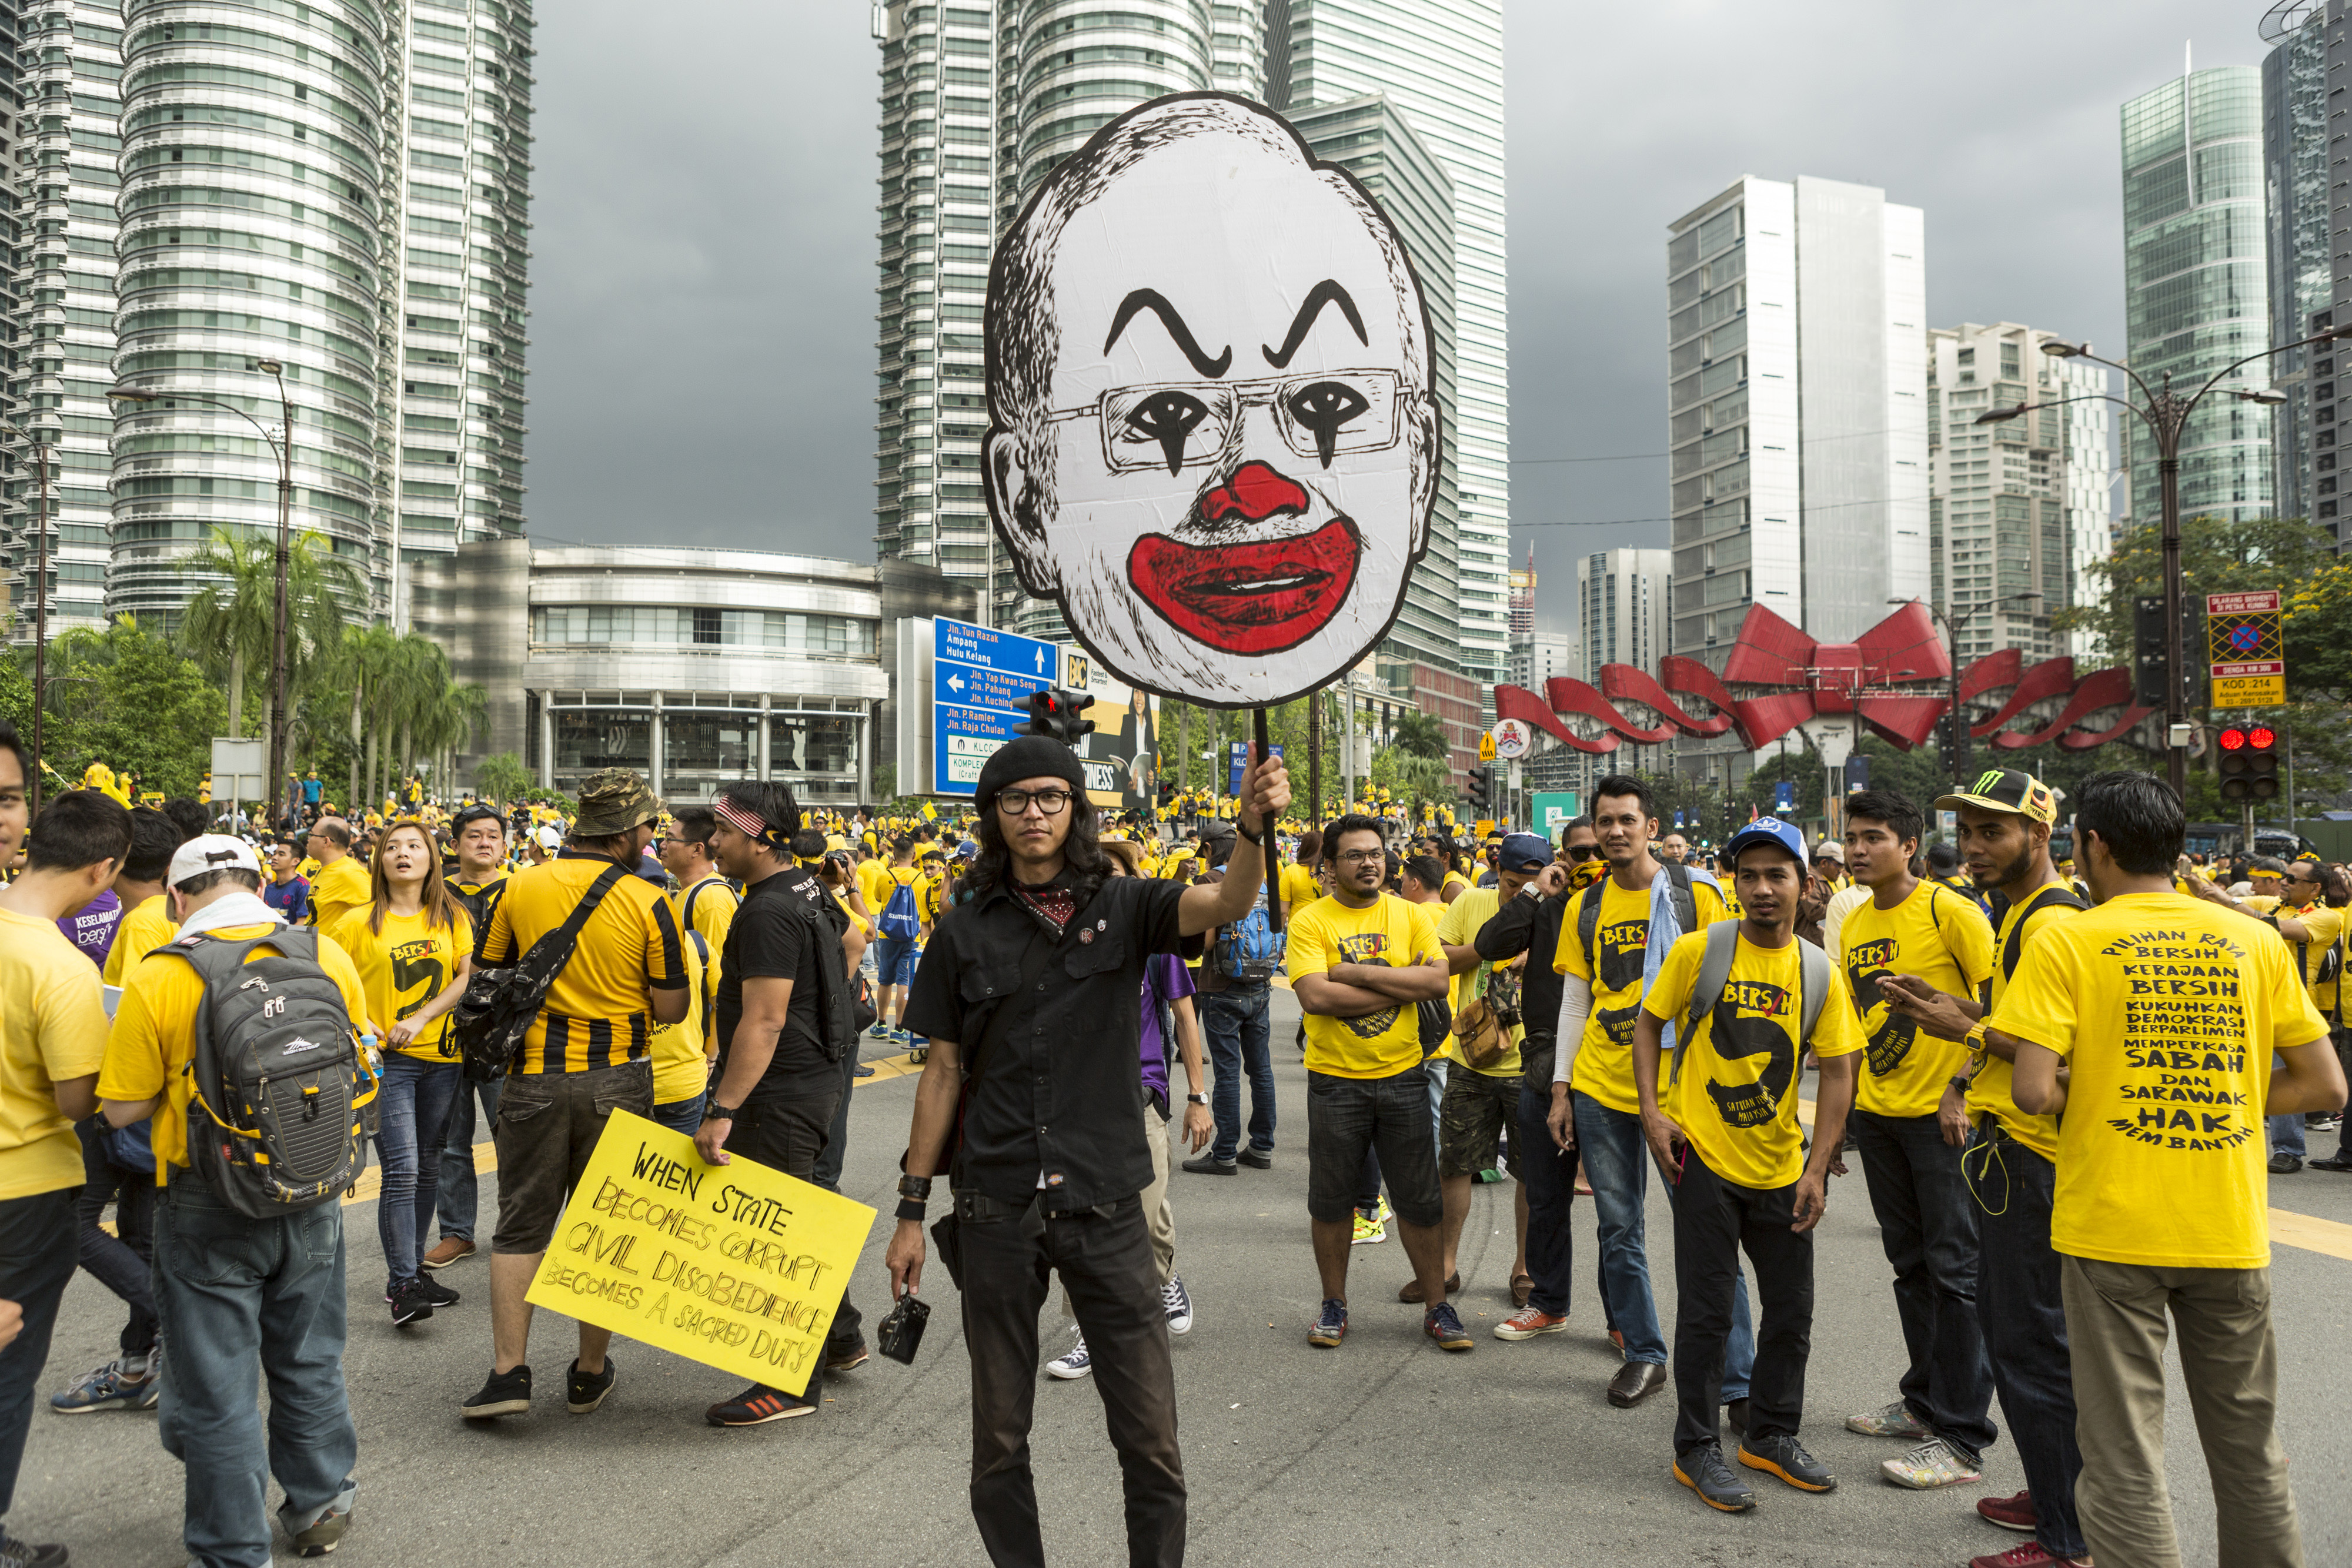 A protester holds up a placard near the Petronas Twin Towers during the Coalition for Clean and Fair Elections rally, also known as Bersih, in Kuala Lumpur on Nov. 19, 2016